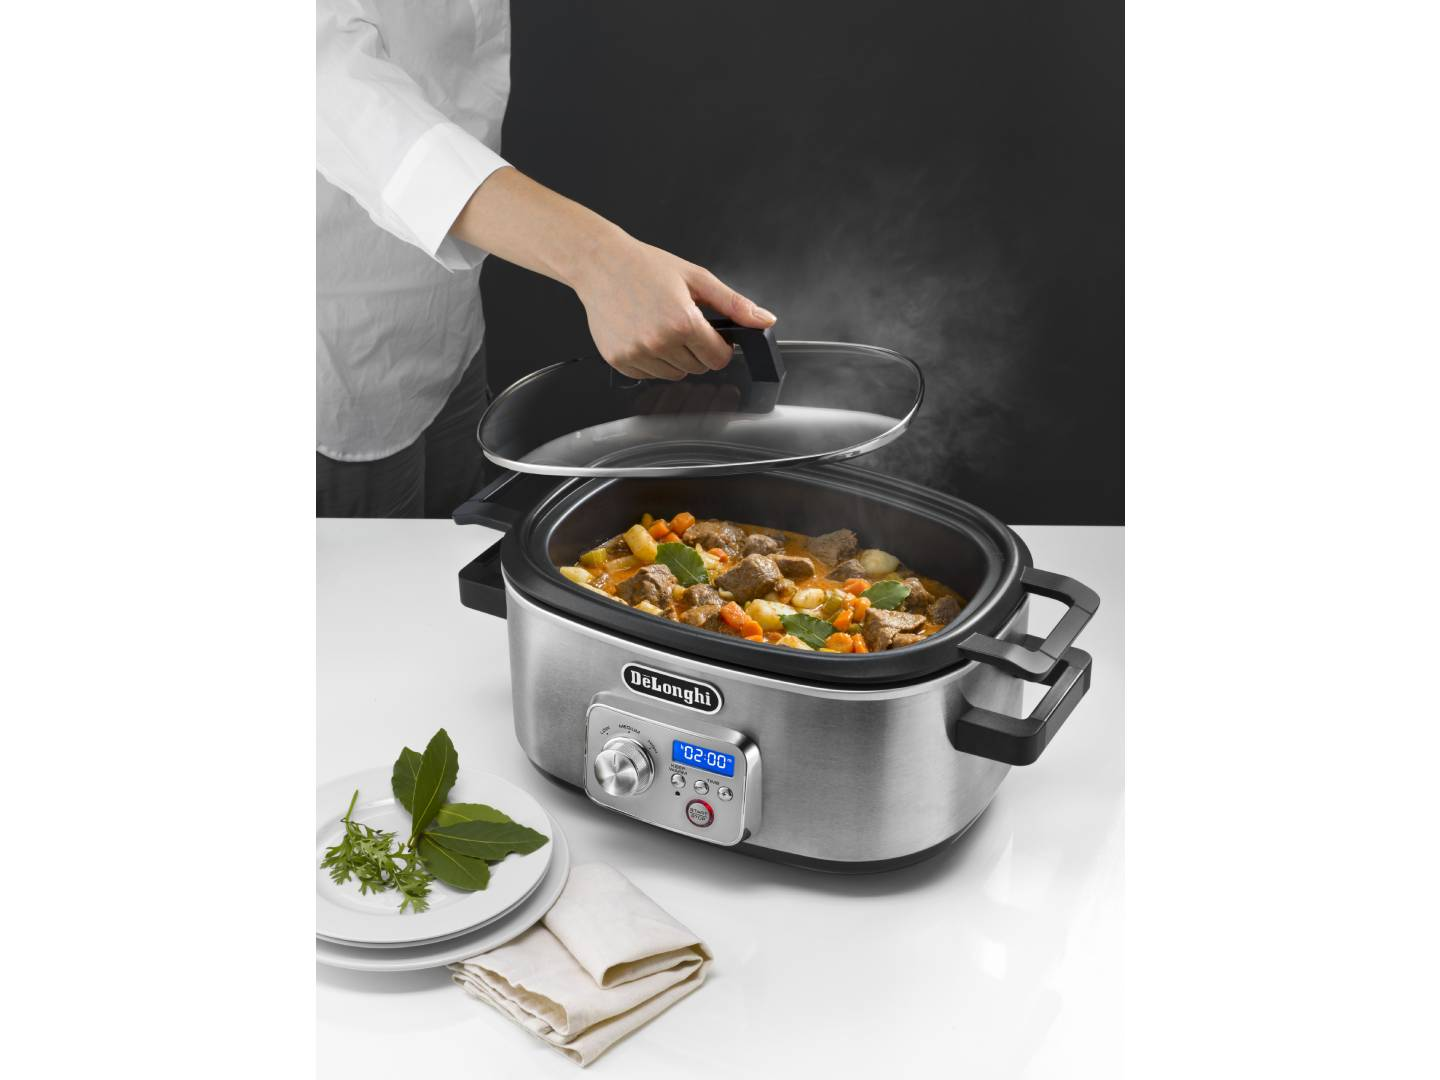 Livenza Programmable Slow Cooker with Stovetop Safe Cooking Pot - 6 Quart -  - CKS1660D